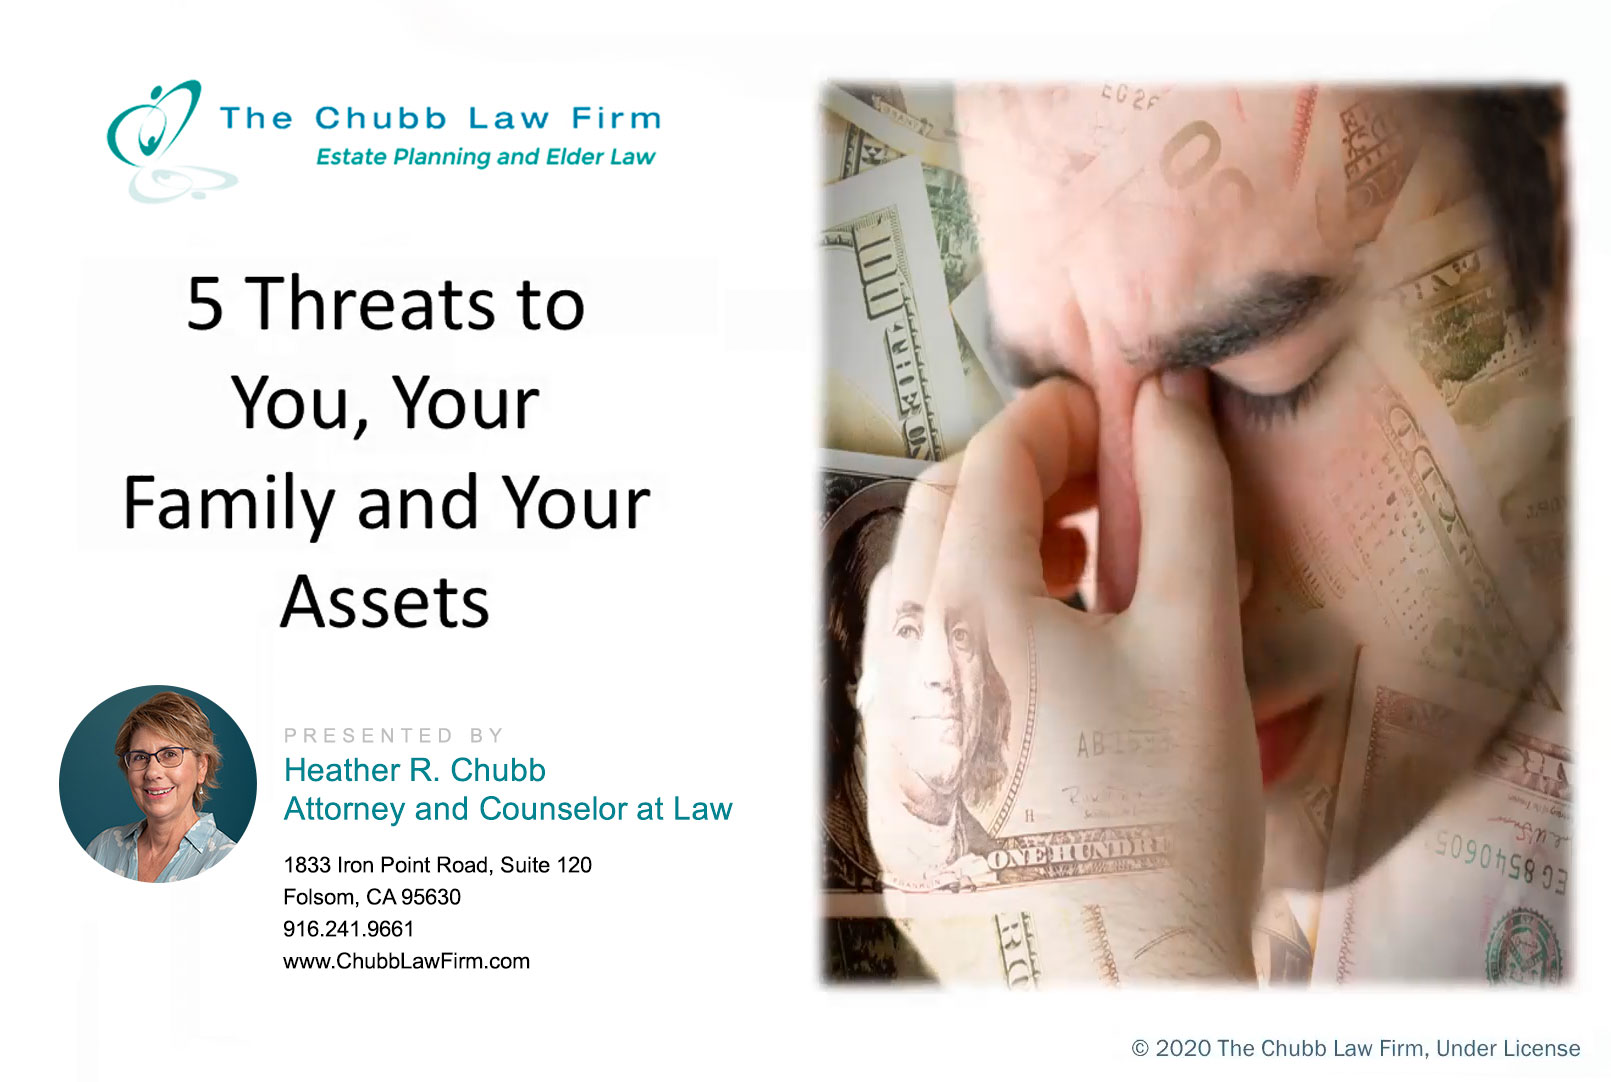 5 Threats to You, Your Family, and Your Assets